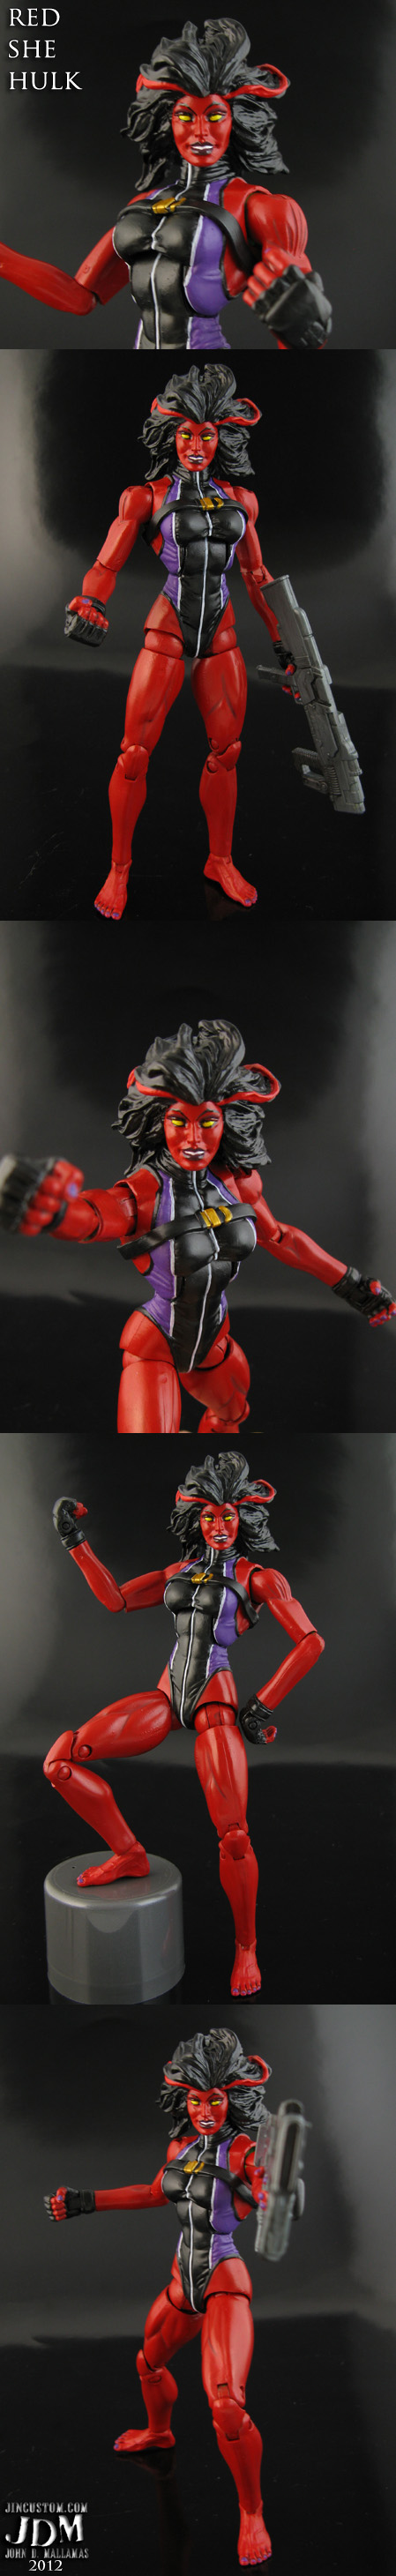 Red She Hulk Marvel Legends